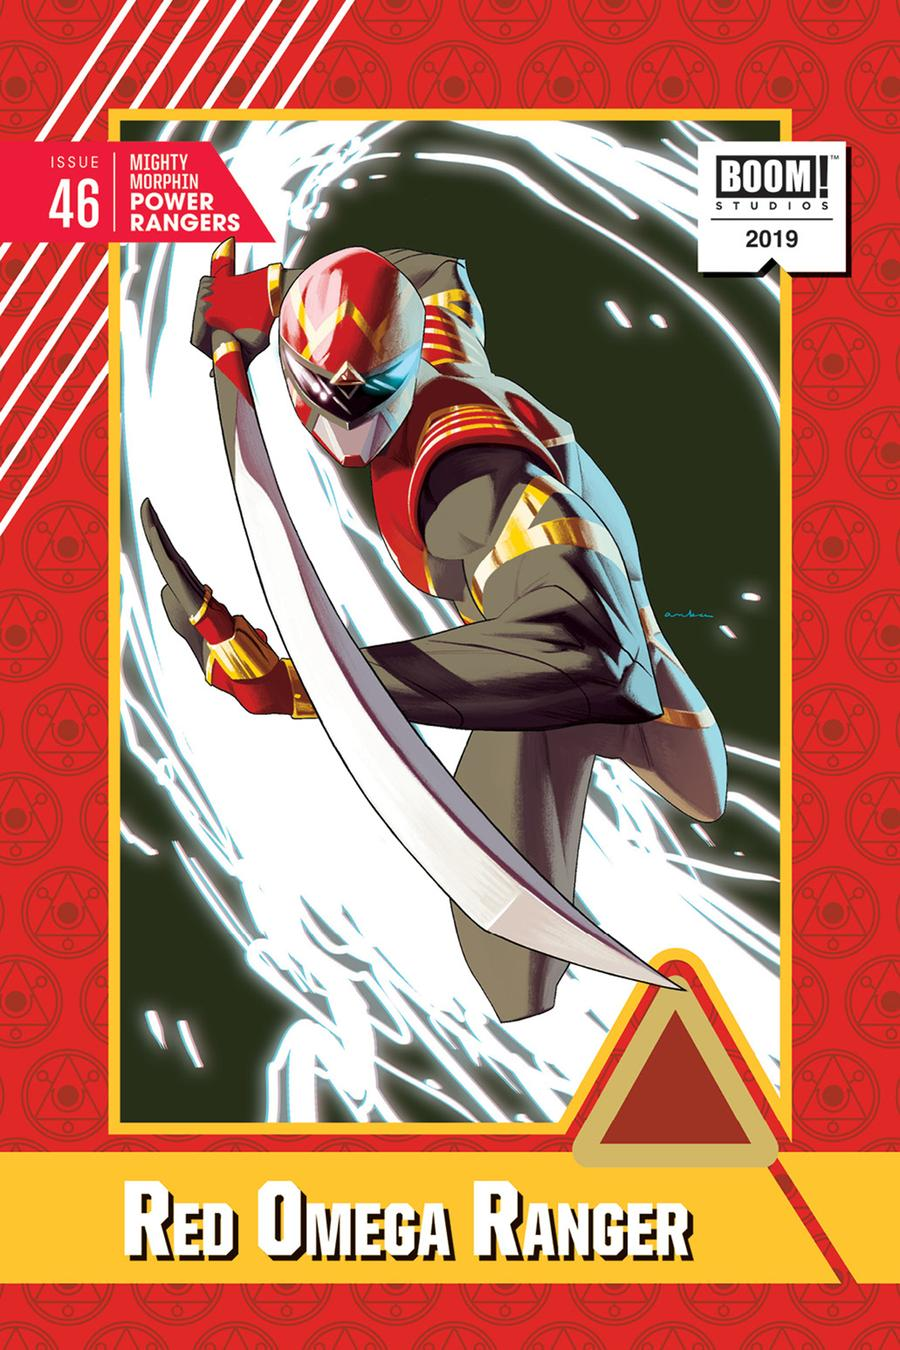 Mighty Morphin Power Rangers (BOOM Studios) #46 Cover D Incentive Kris Anka Variant Cover